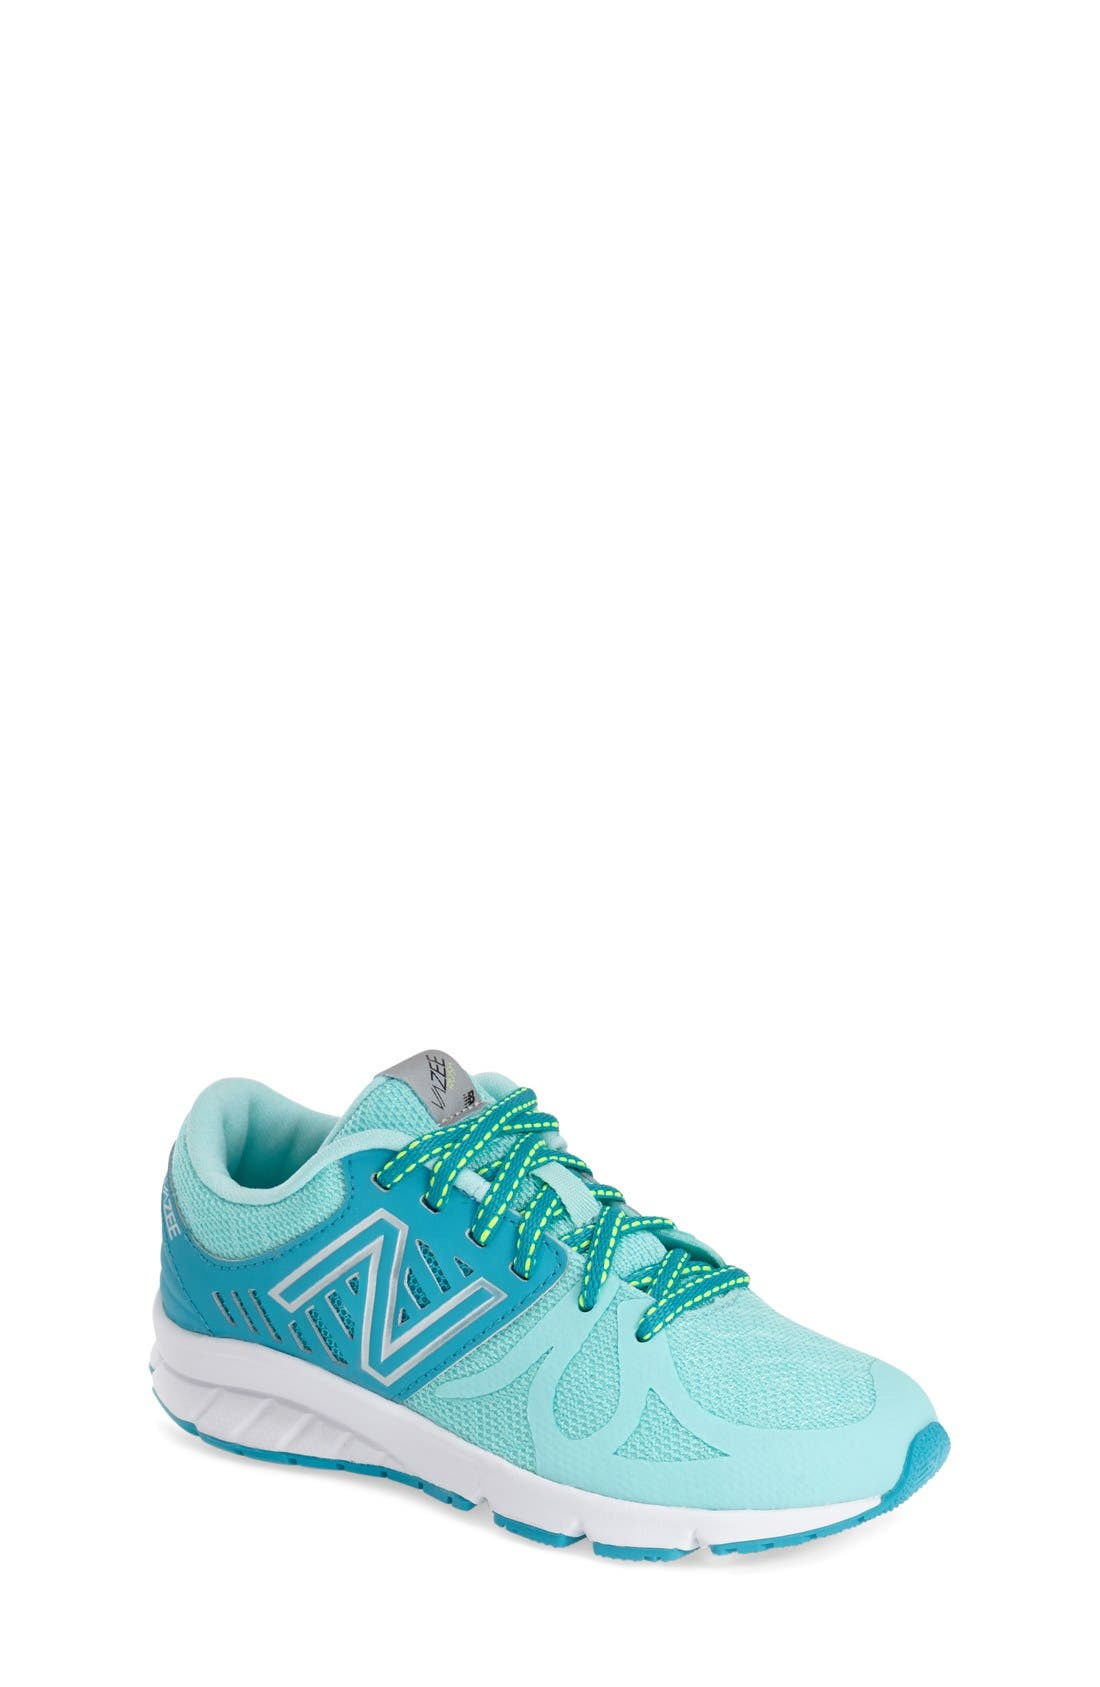 New Balance '200 Rush Vazee' Athletic Shoe (Toddler, Little Kid & Big Kid)